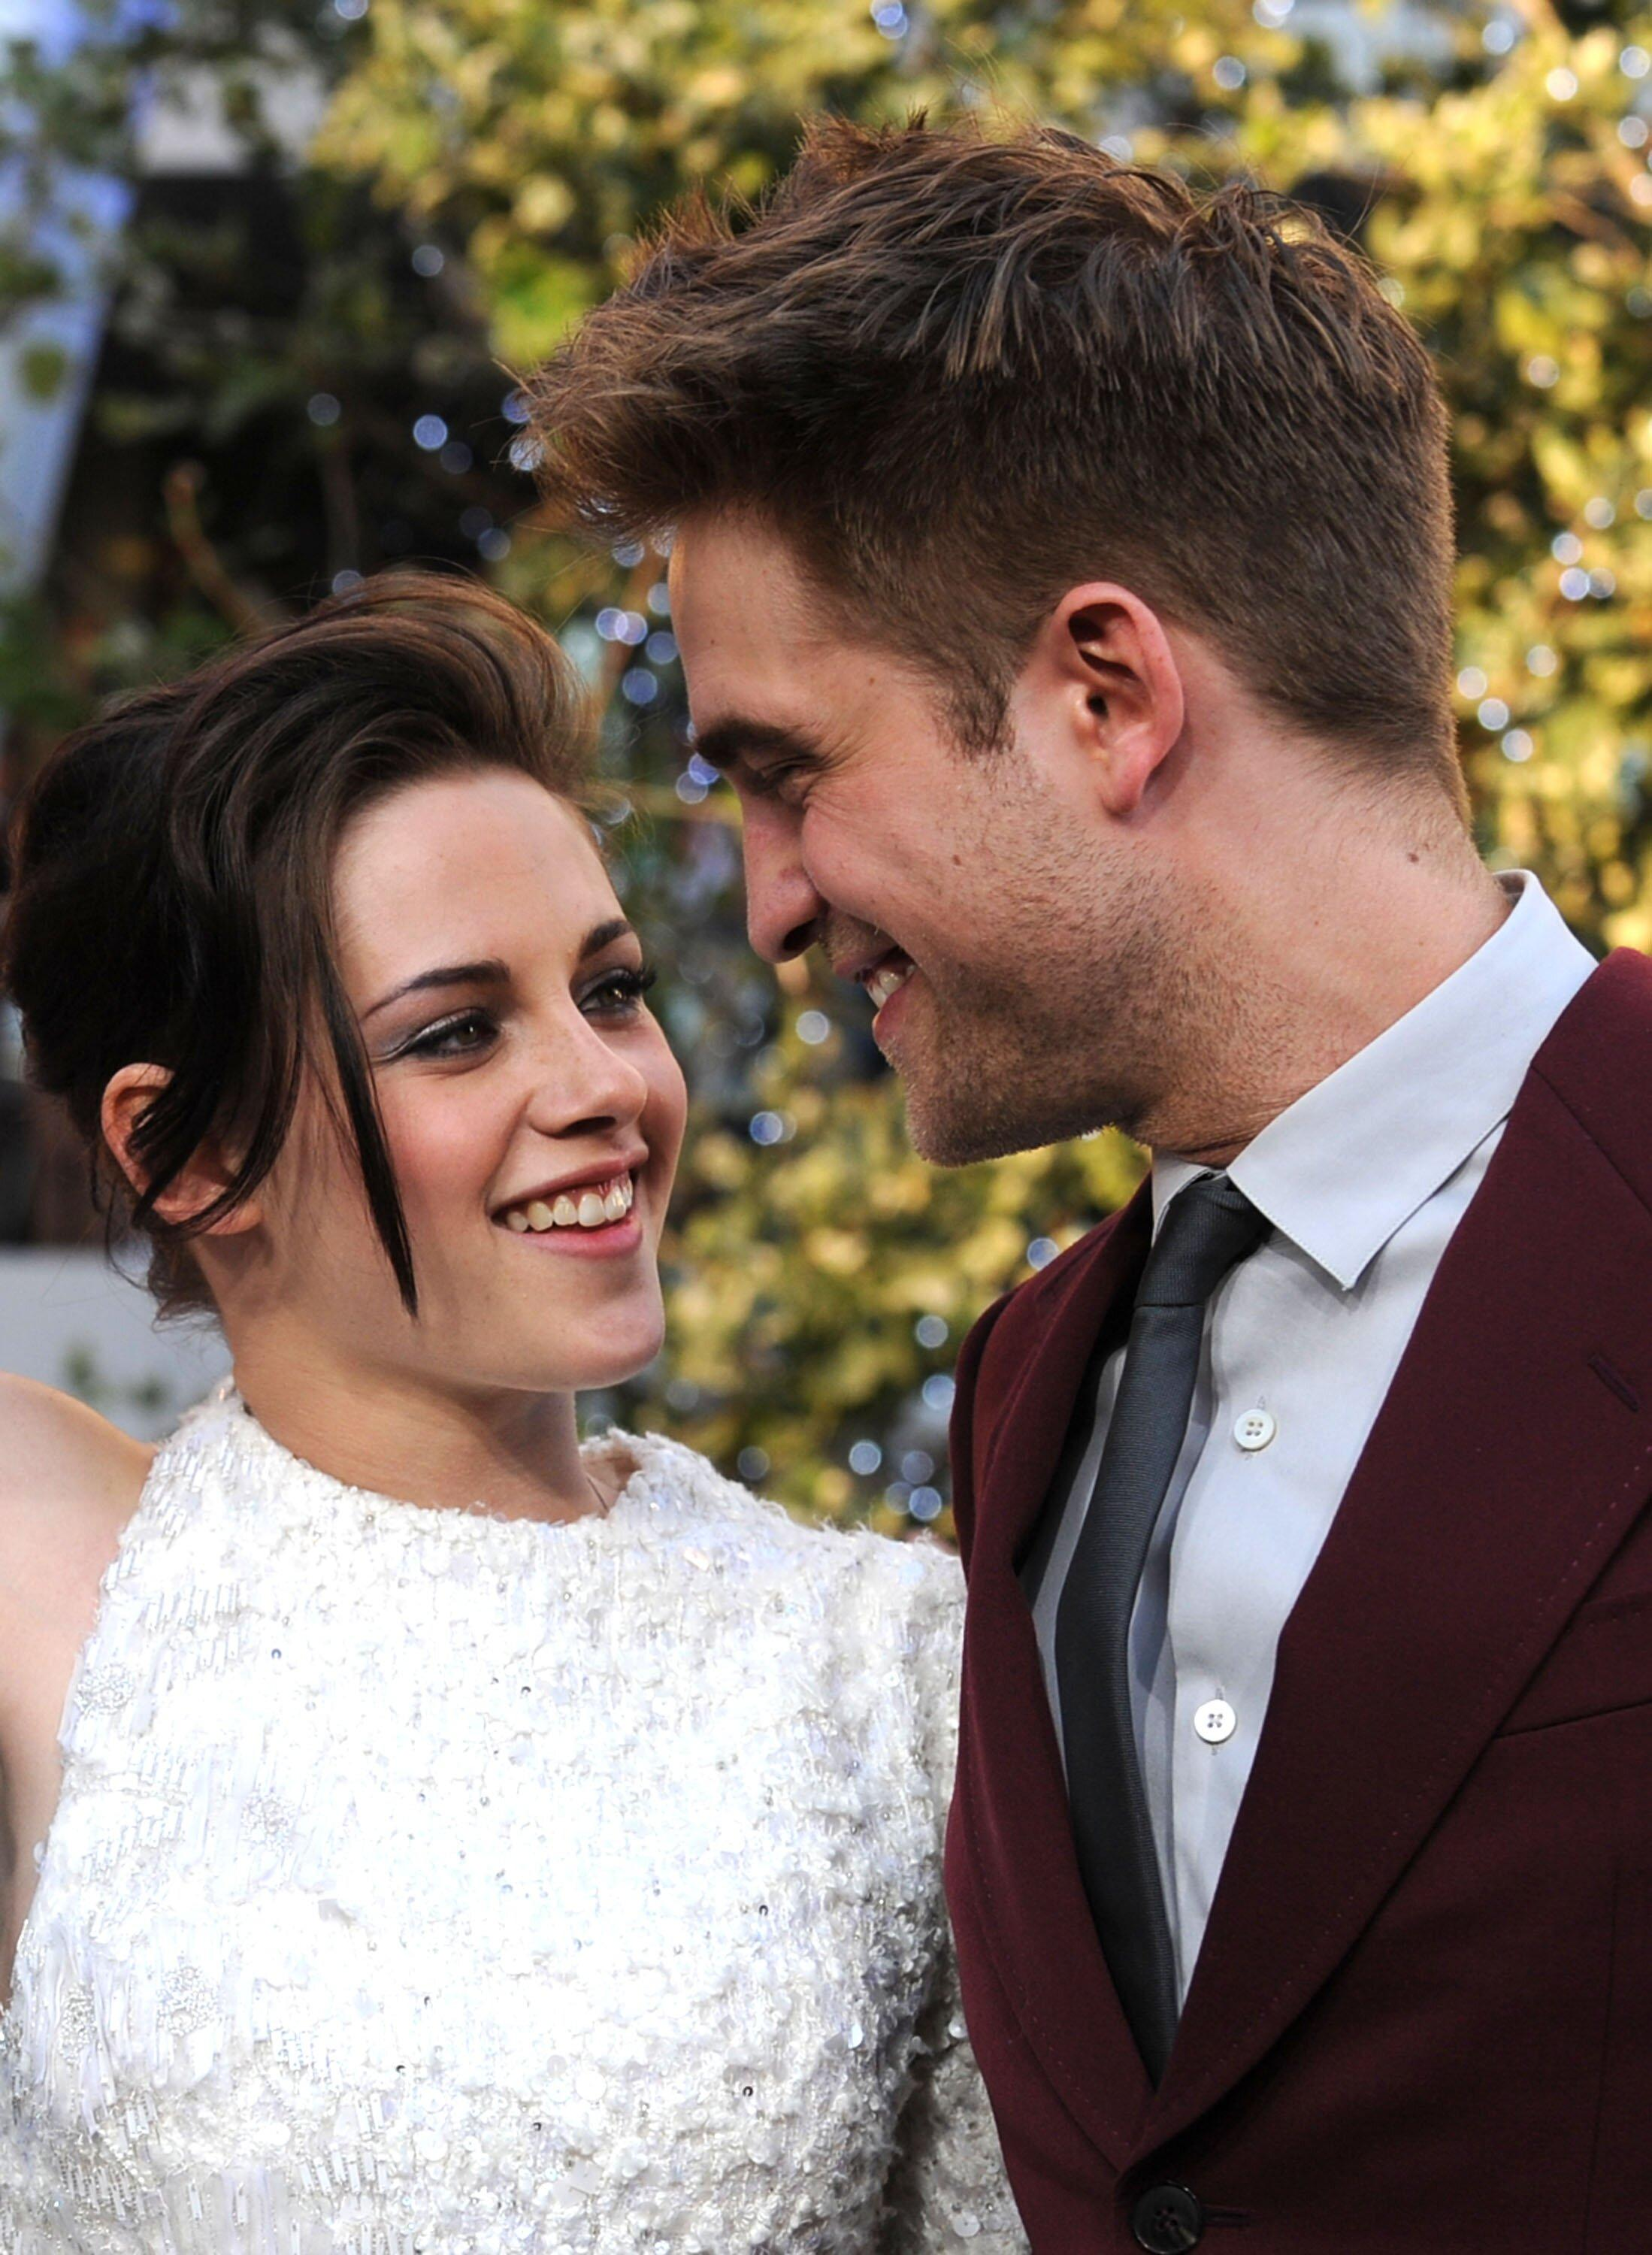 """Kristen Stewart Called the Tabloid Attention on Her Relationship with Robert Pattinson """"Gross"""" - Yahoo Lifestyle"""